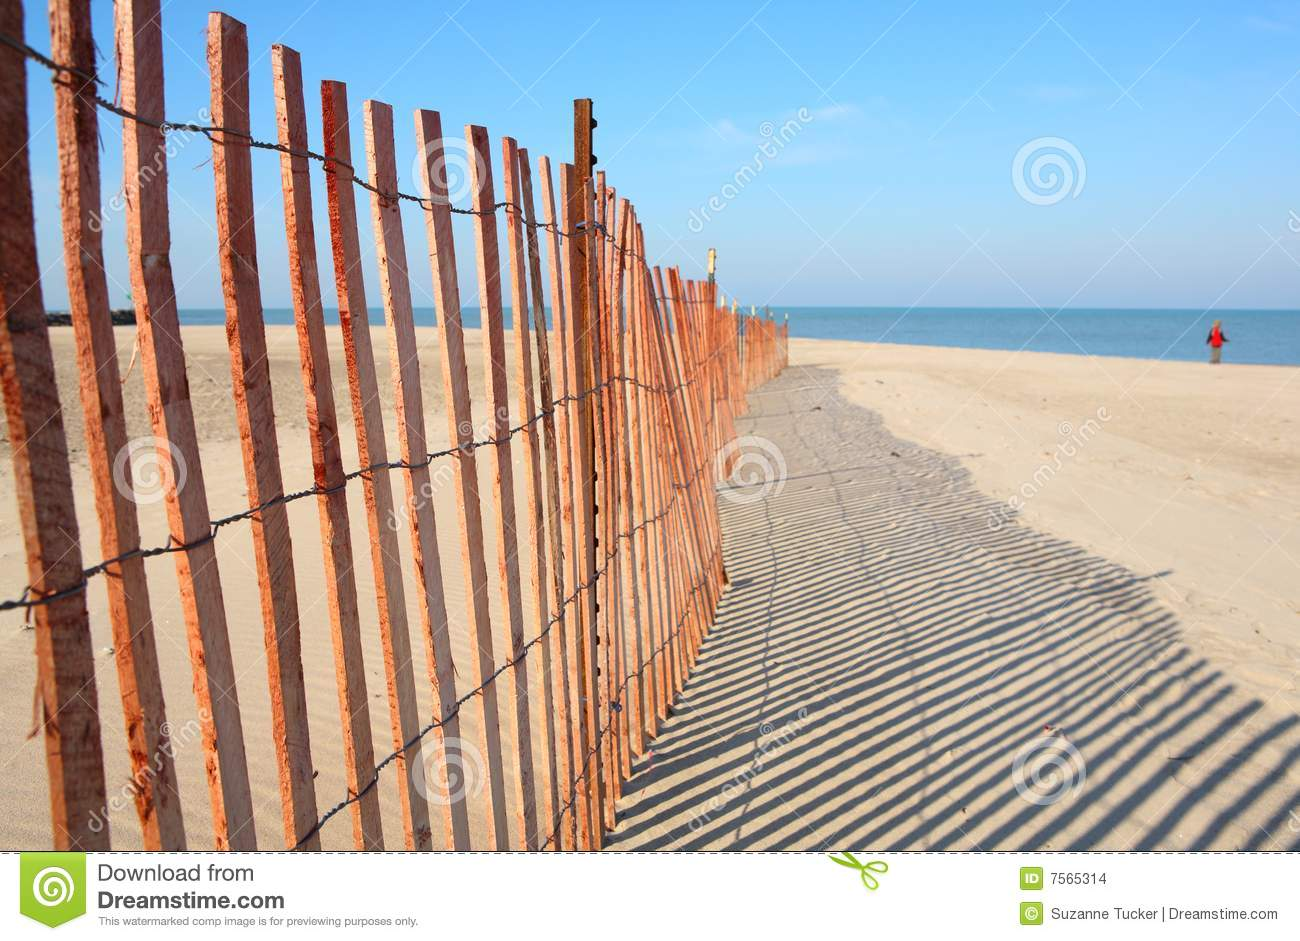 Fence On The Beach Stock Images - Image: 7565314